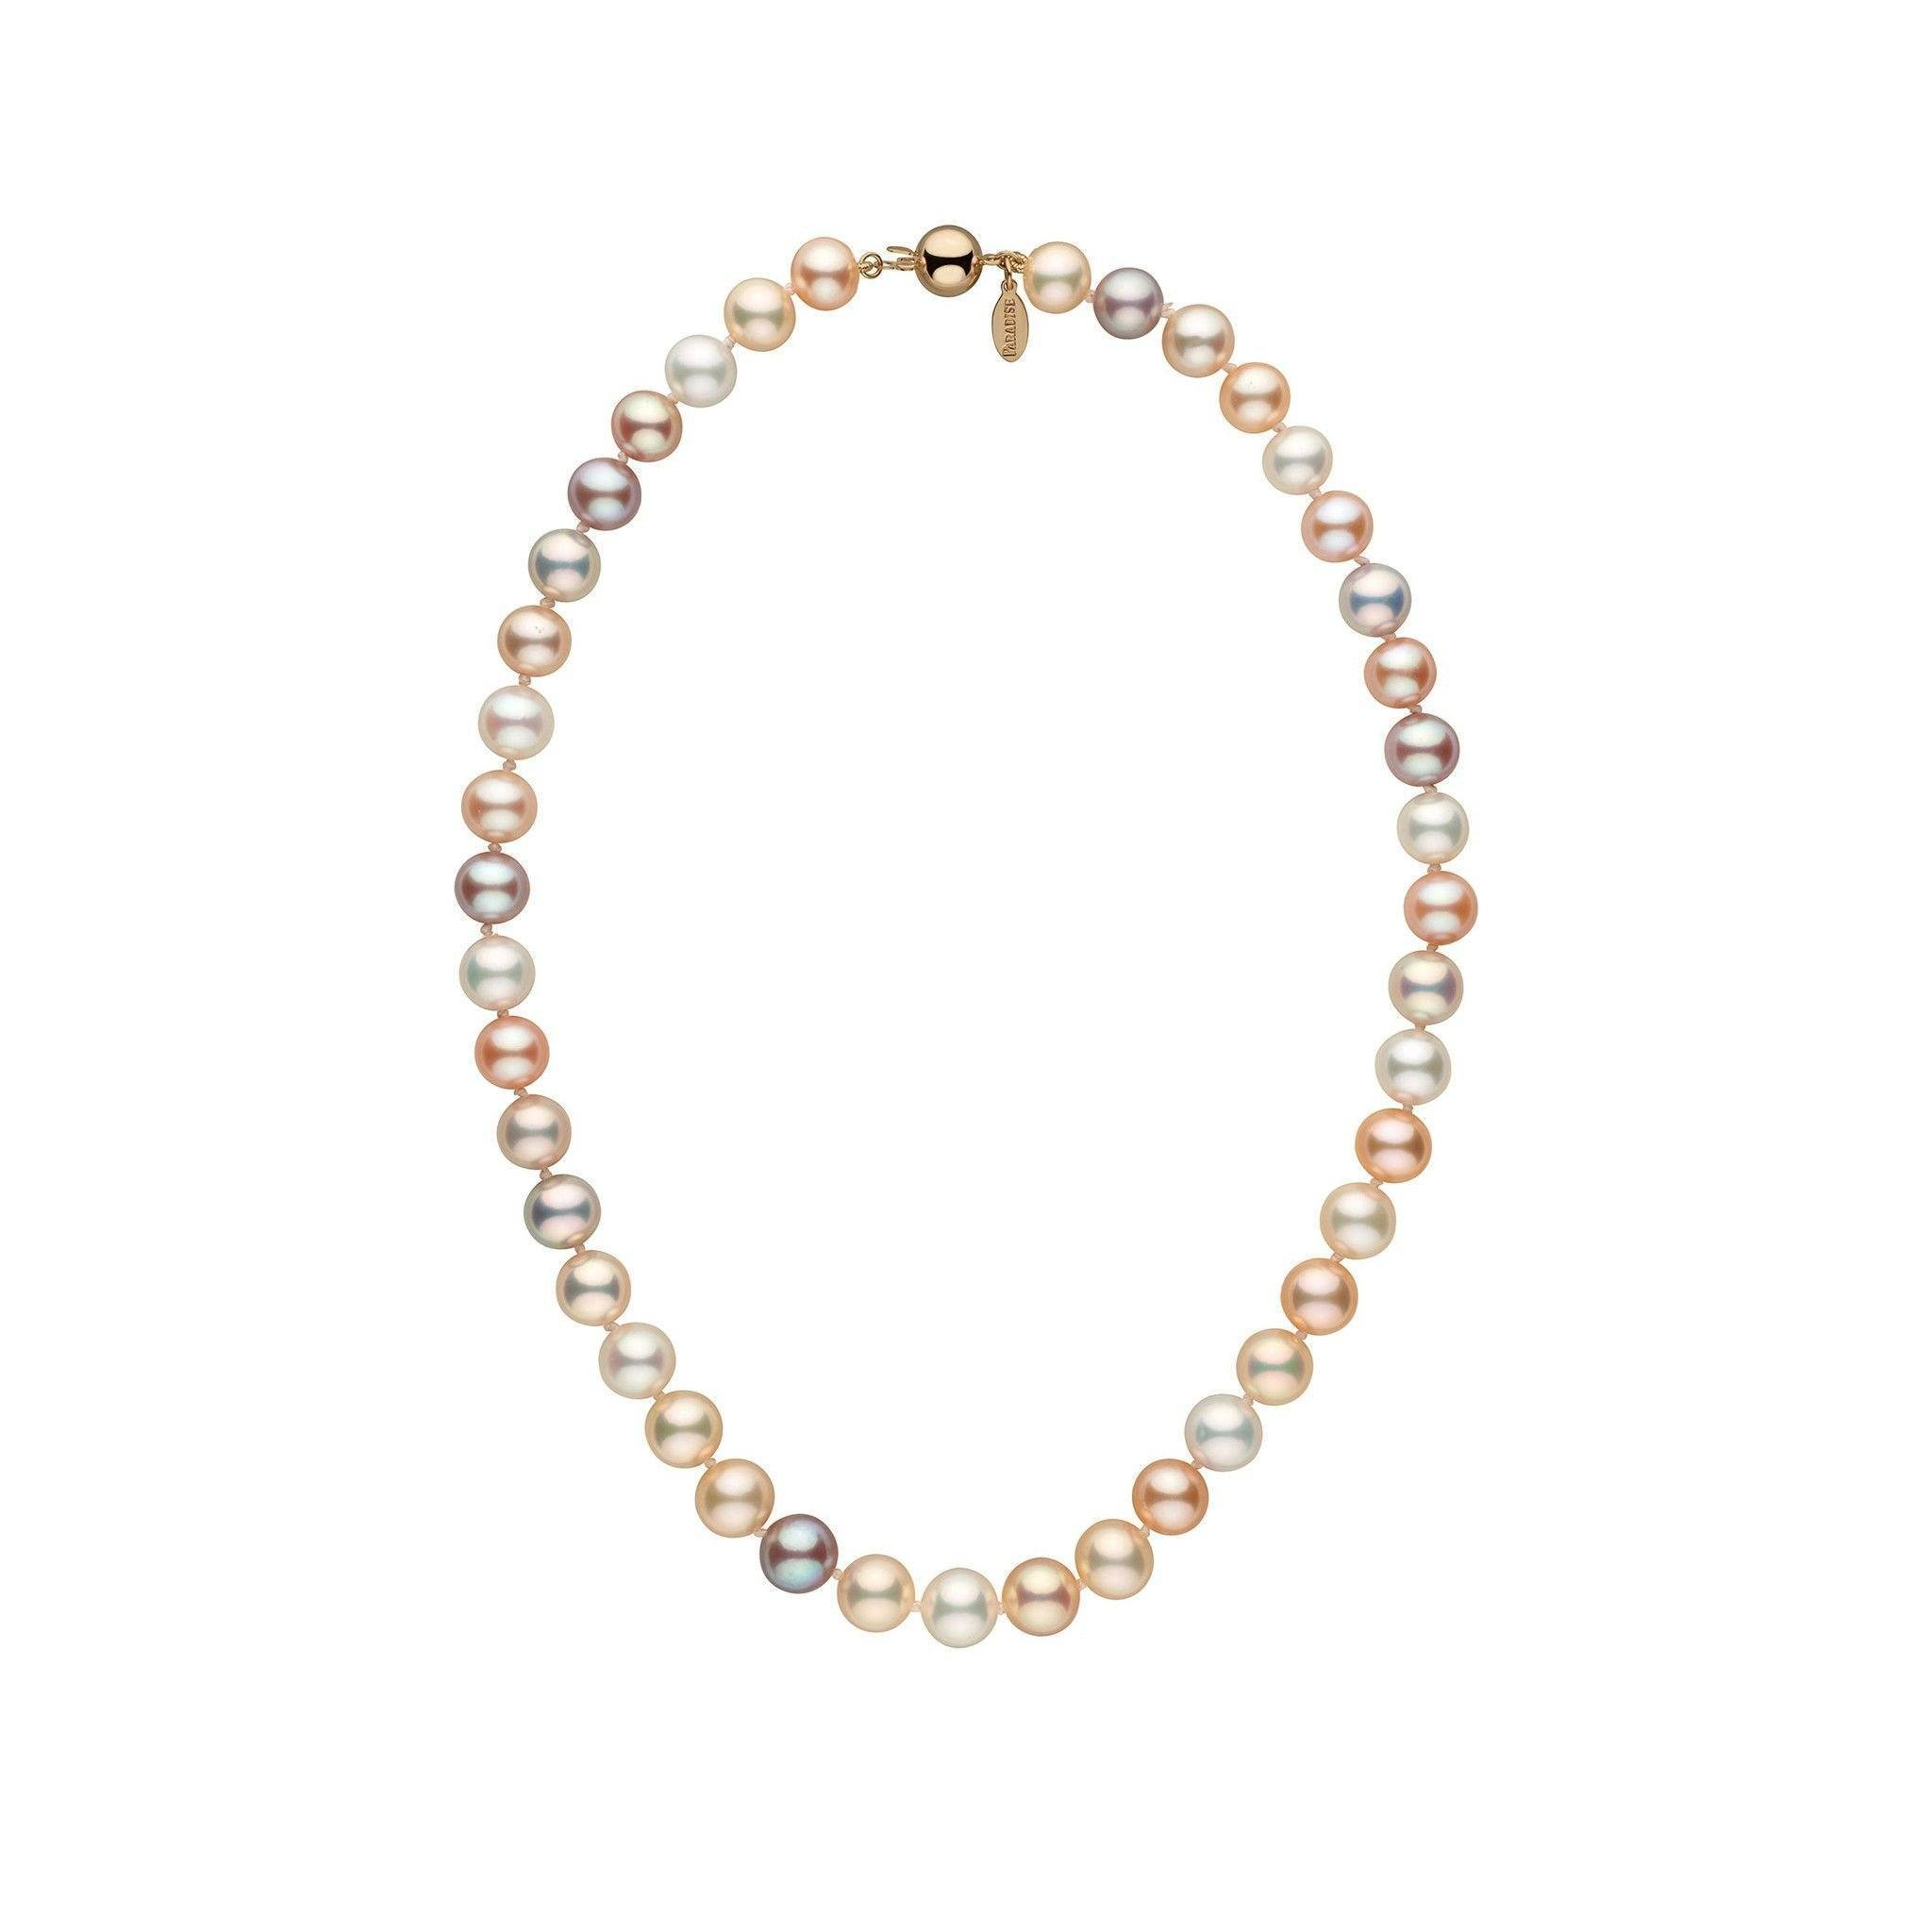 8.5-9.0 mm 16 inch Multicolor Freshadama Freshwater Pearl Necklace